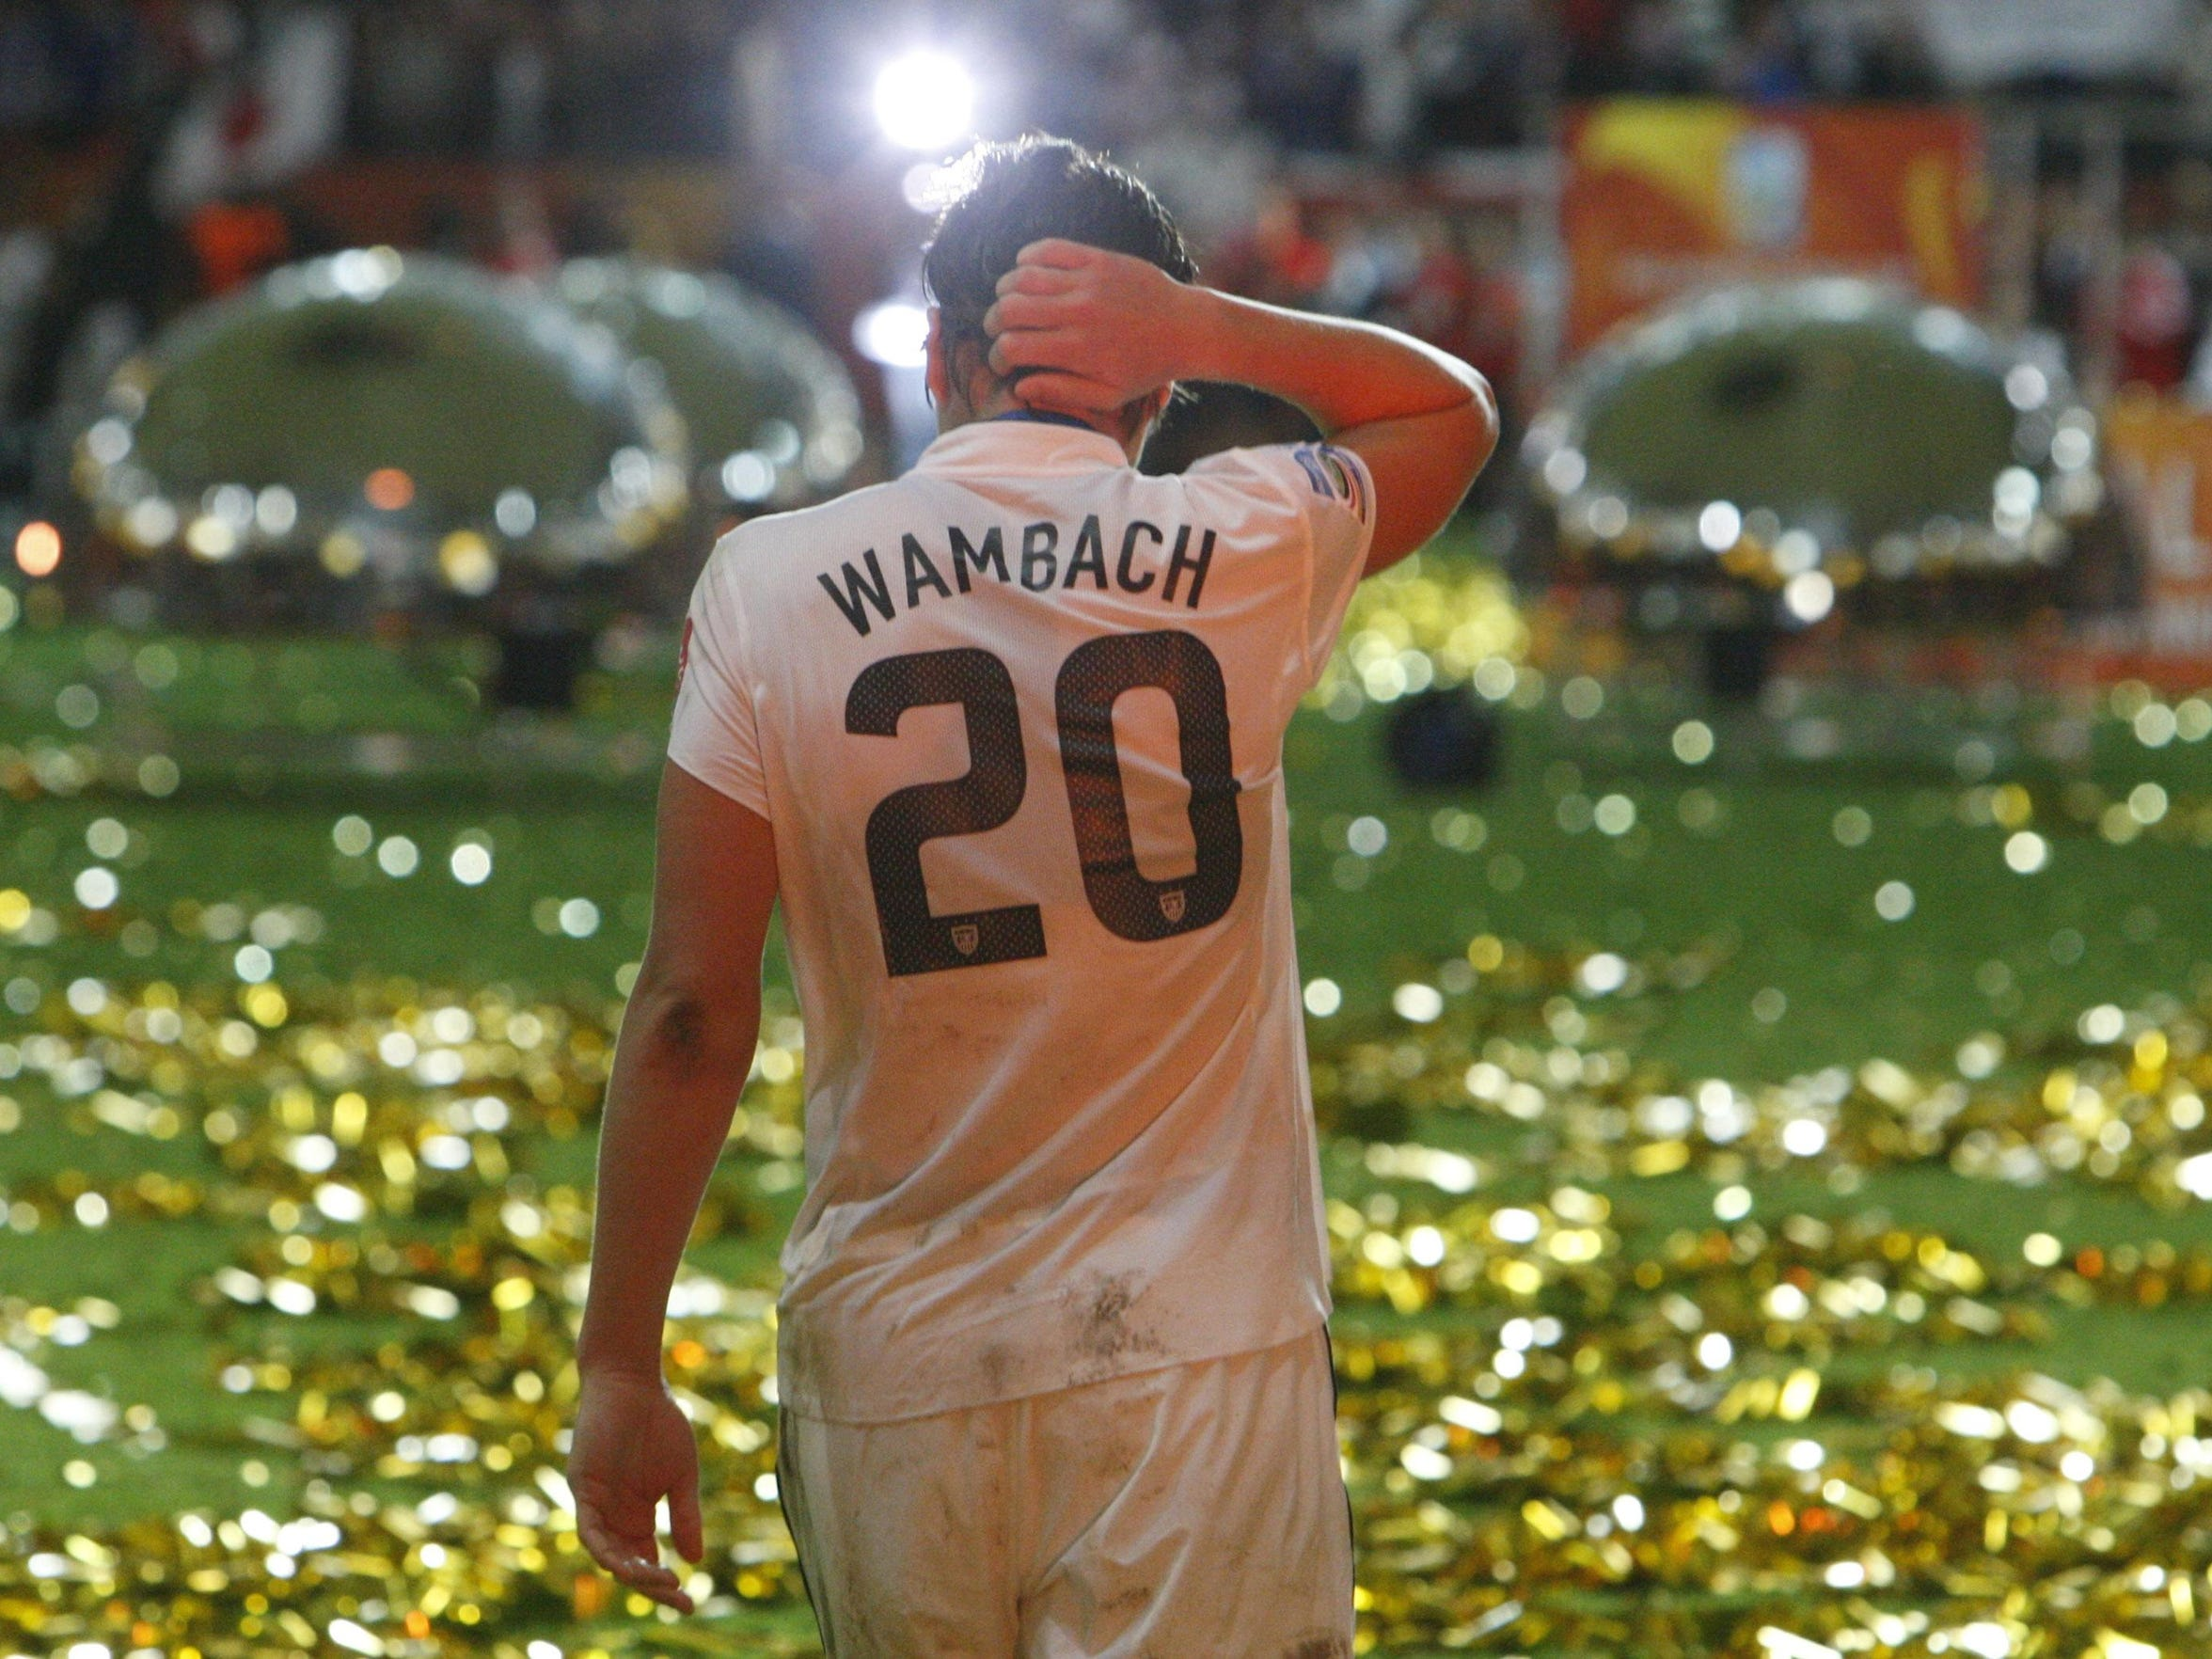 Abby Wambach walks on the field after the U.S. lost the final match against Japan in the 2011 World Cup final.